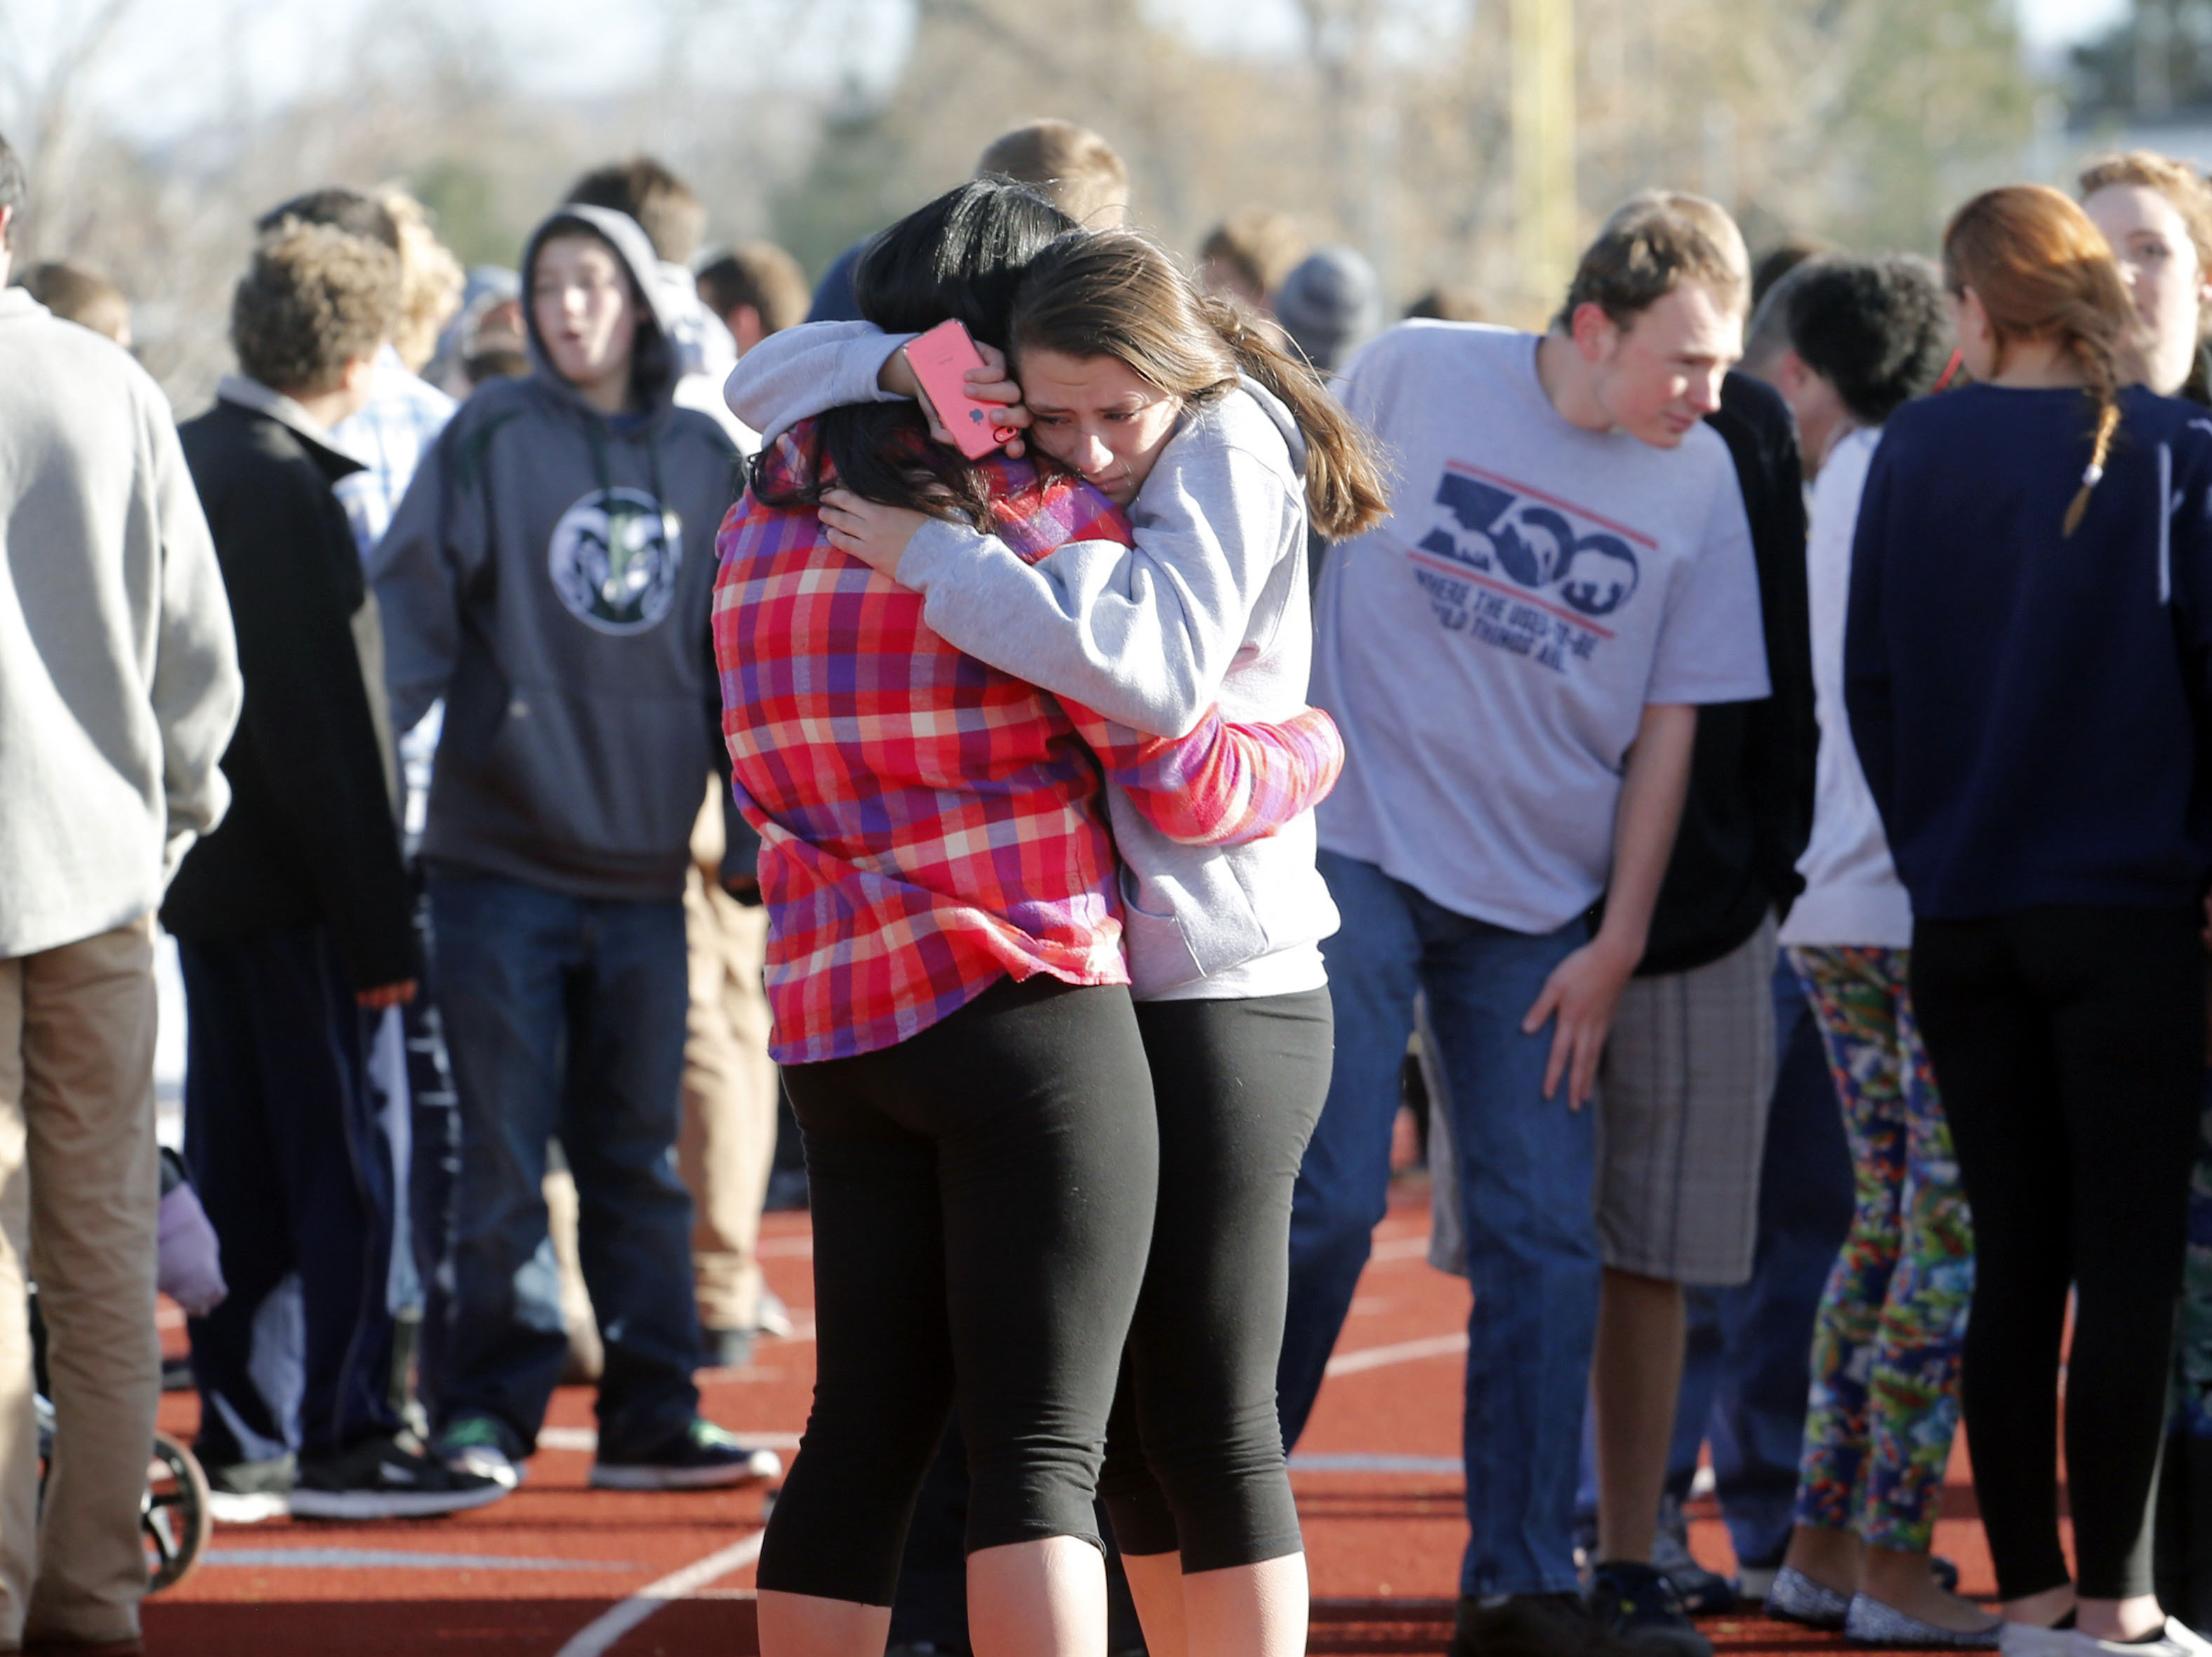 School Shooting Is Another Tragedy For Colorado